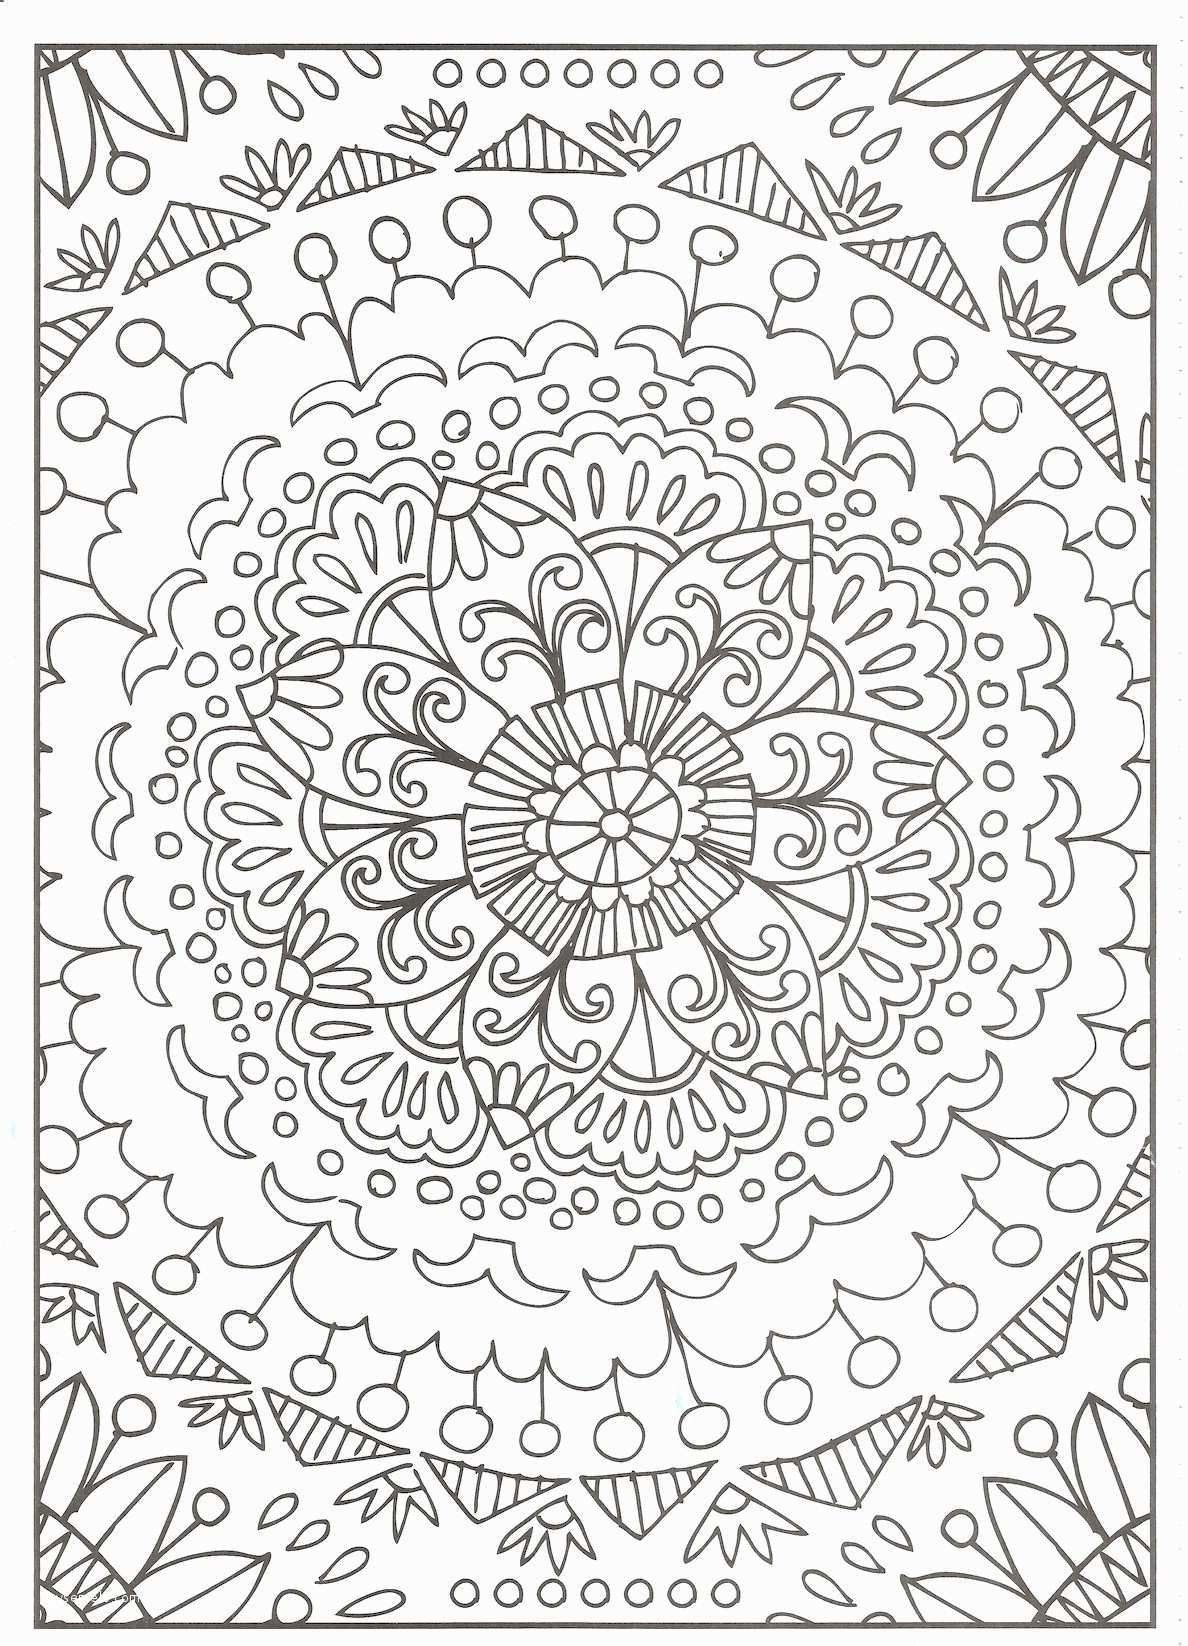 Make Your Own Coloring Pages Unique Coloring Pages And Books Excelent Personalized C Printable Flower Coloring Pages Pumpkin Coloring Pages Fall Coloring Pages